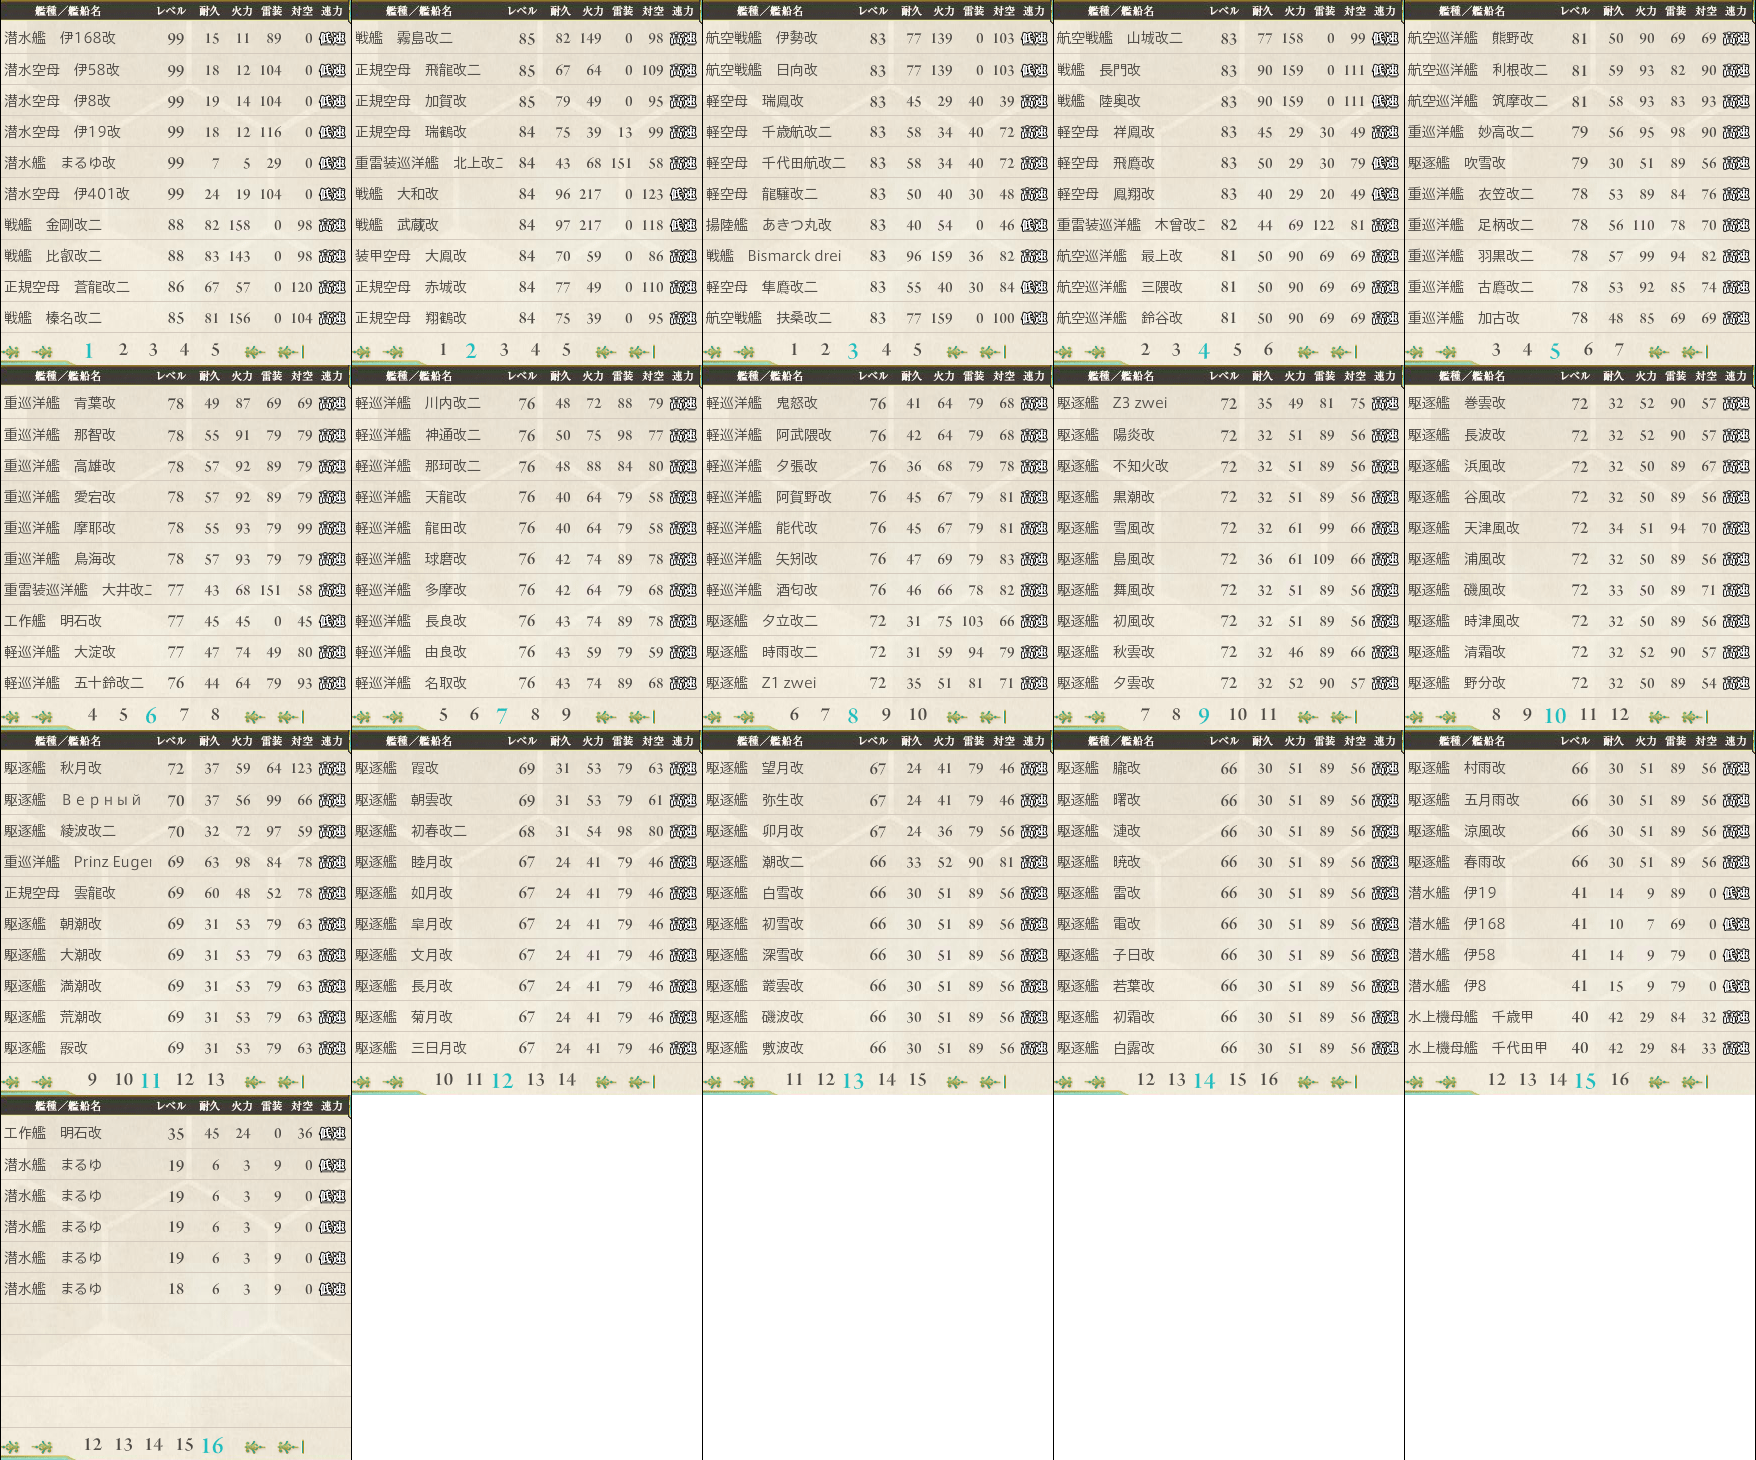 data.kancolle.levelsort.20141228.png